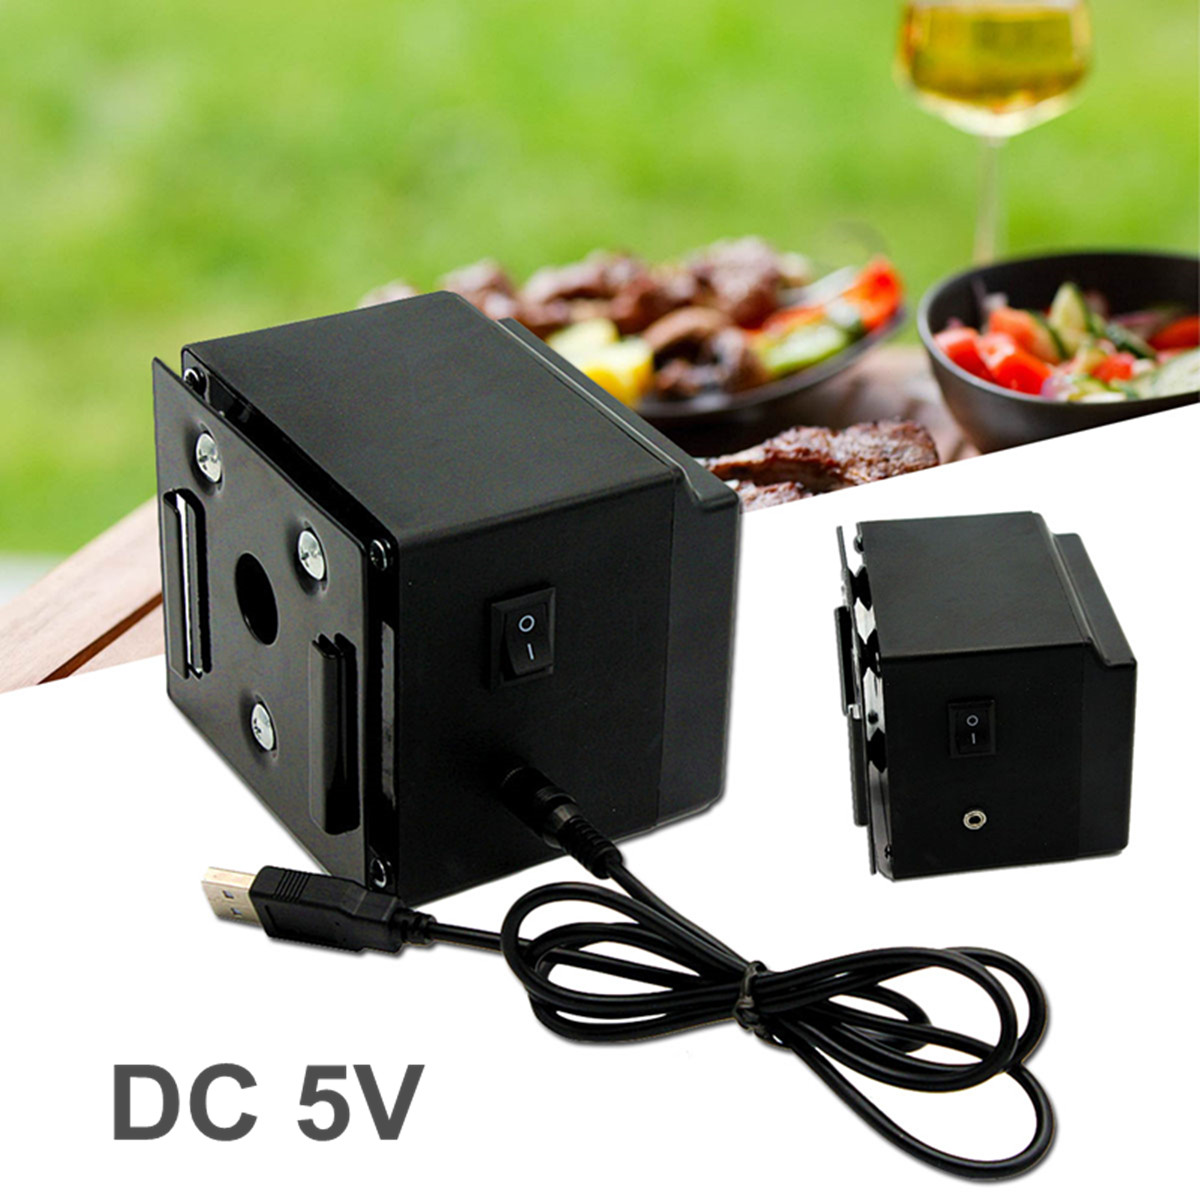 Aluminum DC 5V BBQ Spit Roaster Rotisserie Motor Tools Picnic Barbecue Accessories USB Boost Cable Kitchen Appliance Parts